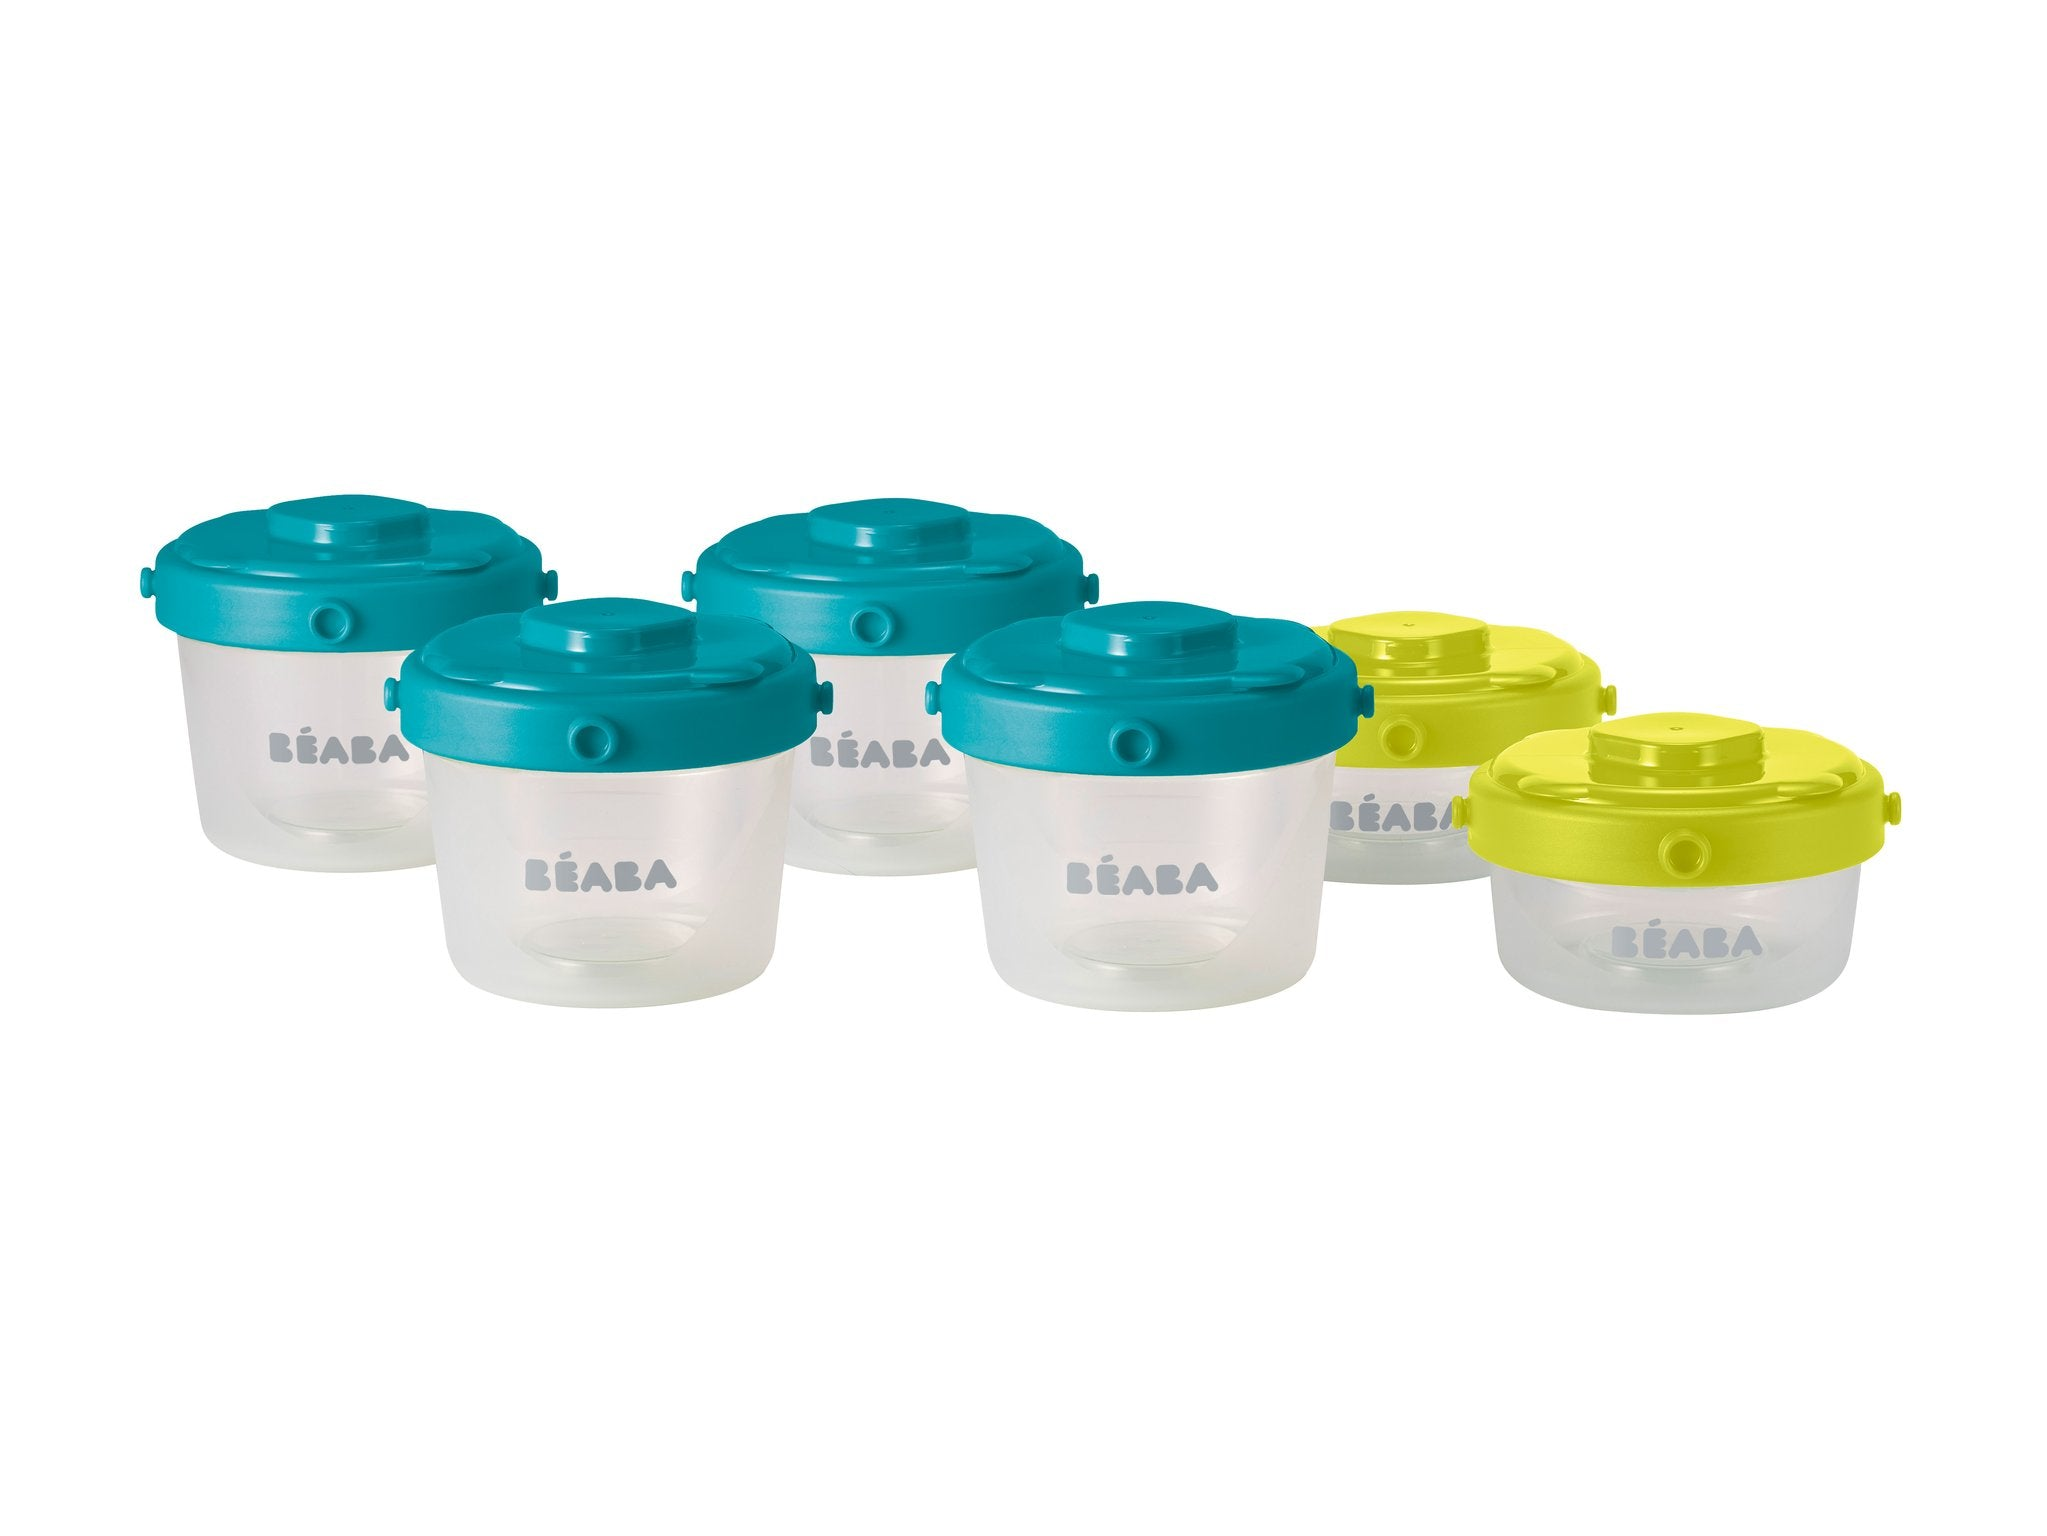 Beaba Set of 6 Clip Portions - 1st age (60ml + 120ml)